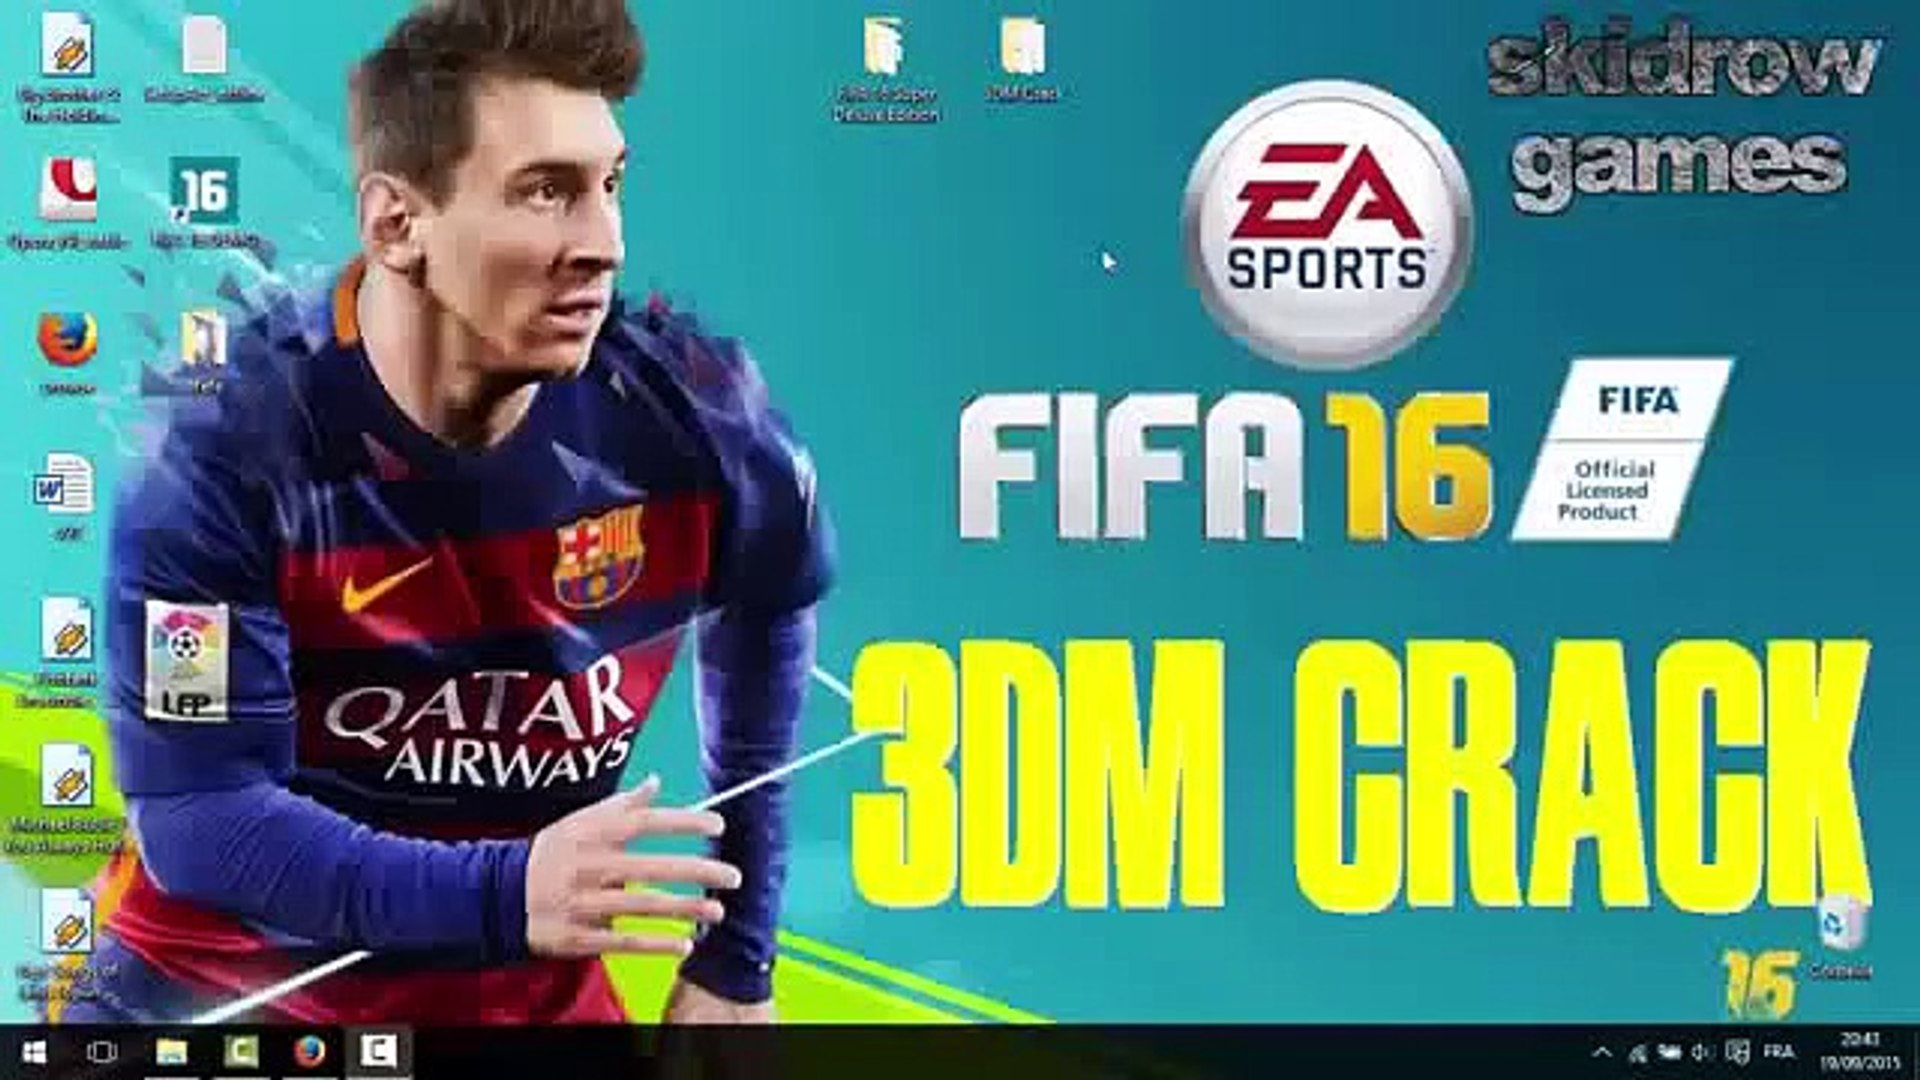 FIFA 16 crack 3dm working win7 8 10 -new